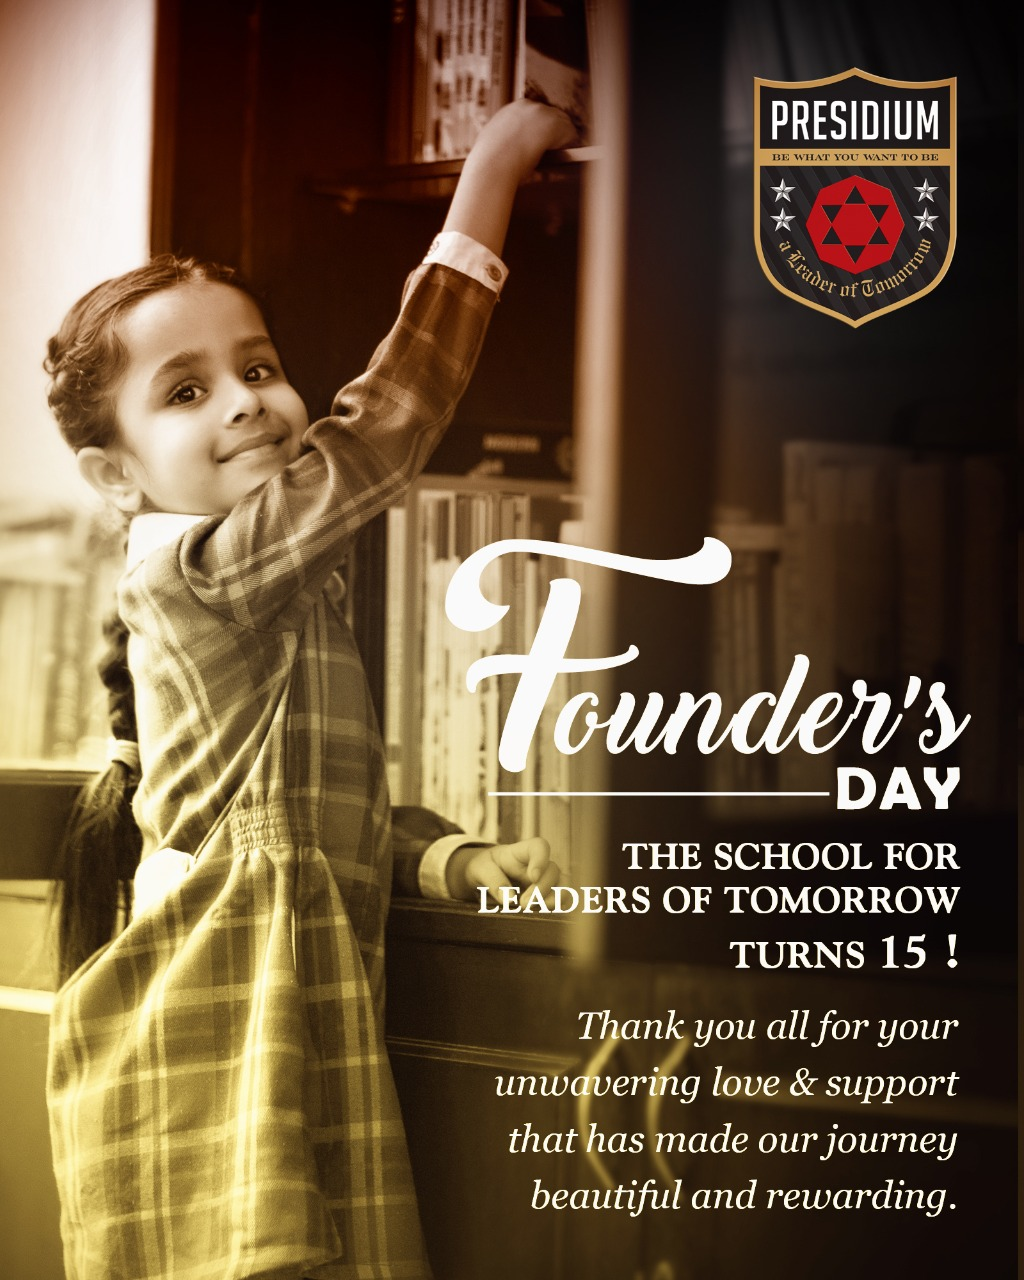 THE SCHOOL FOR LEADERS OF TOMORROW TURNS 15!